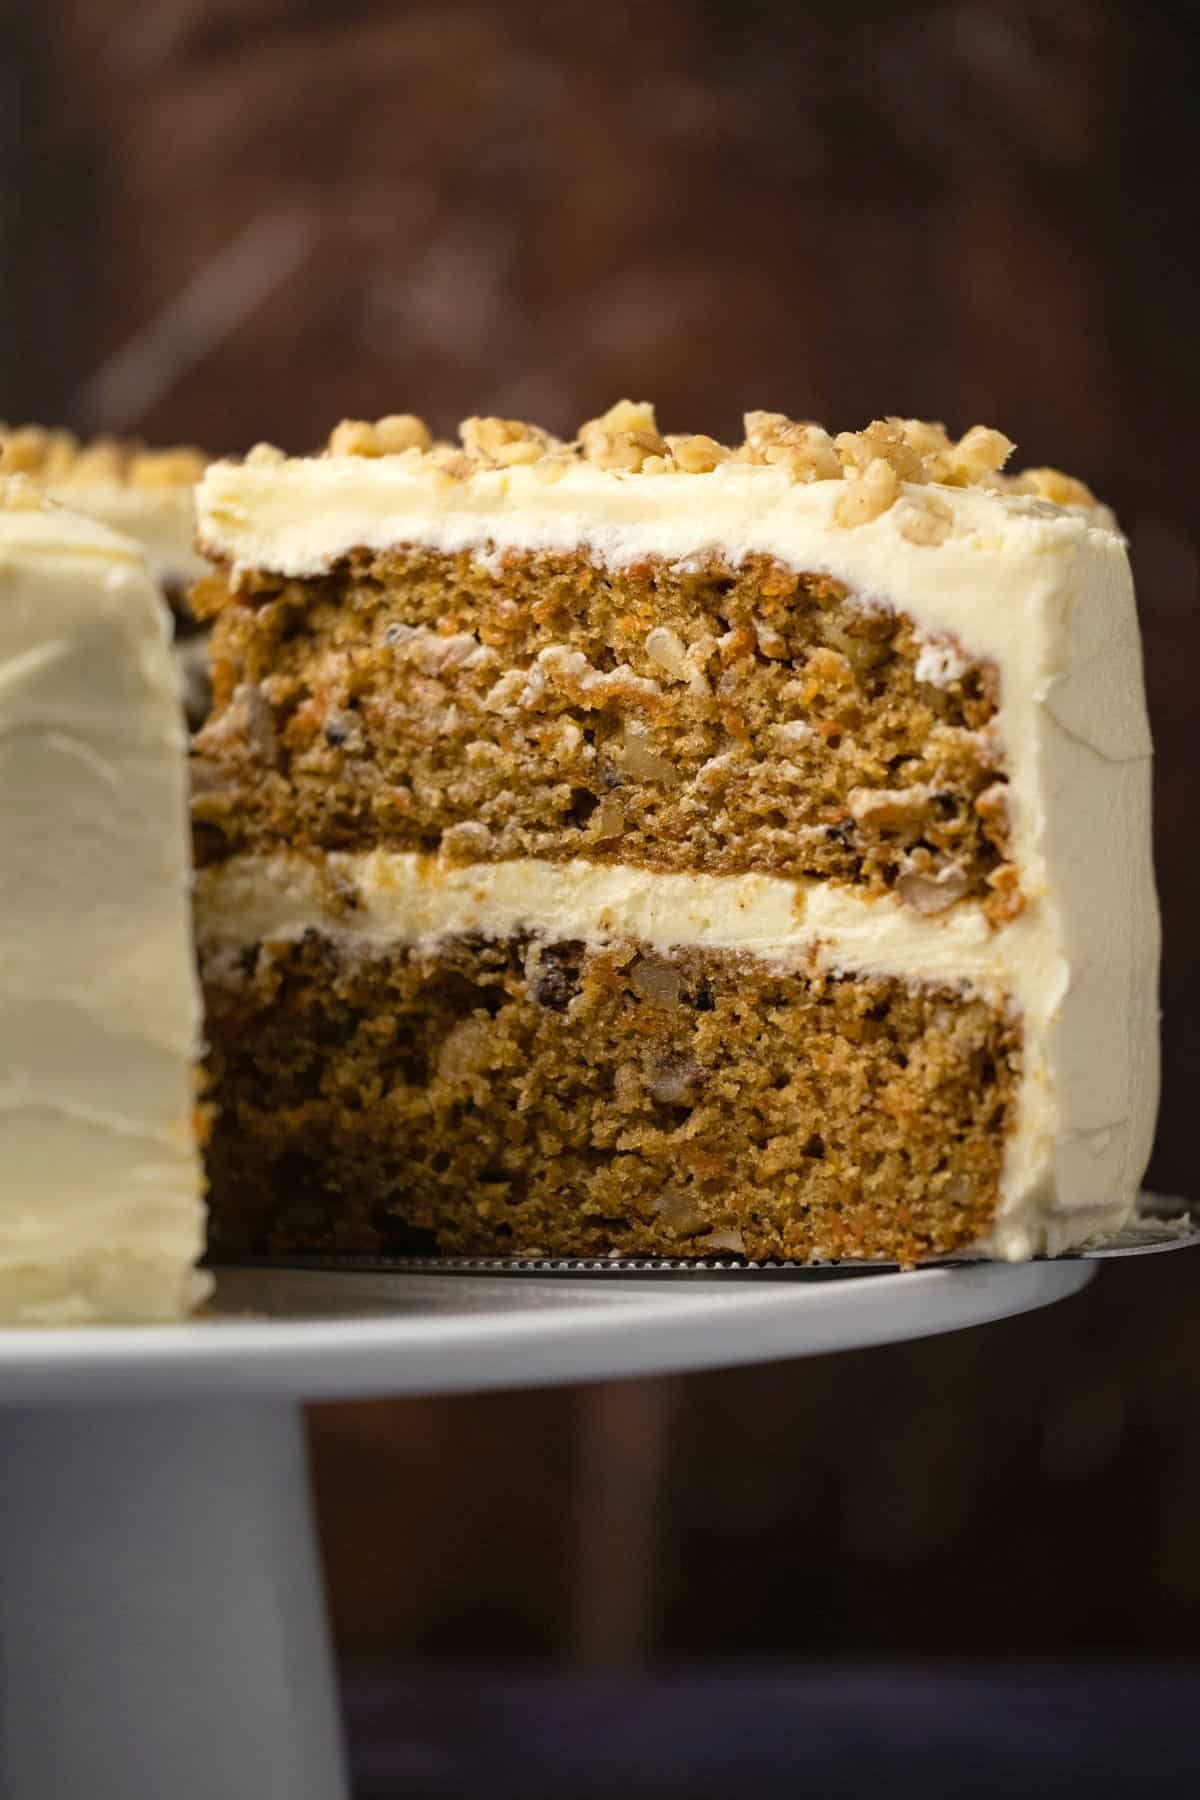 Carrot cake on a white cake stand with one slice cut and ready to serve.